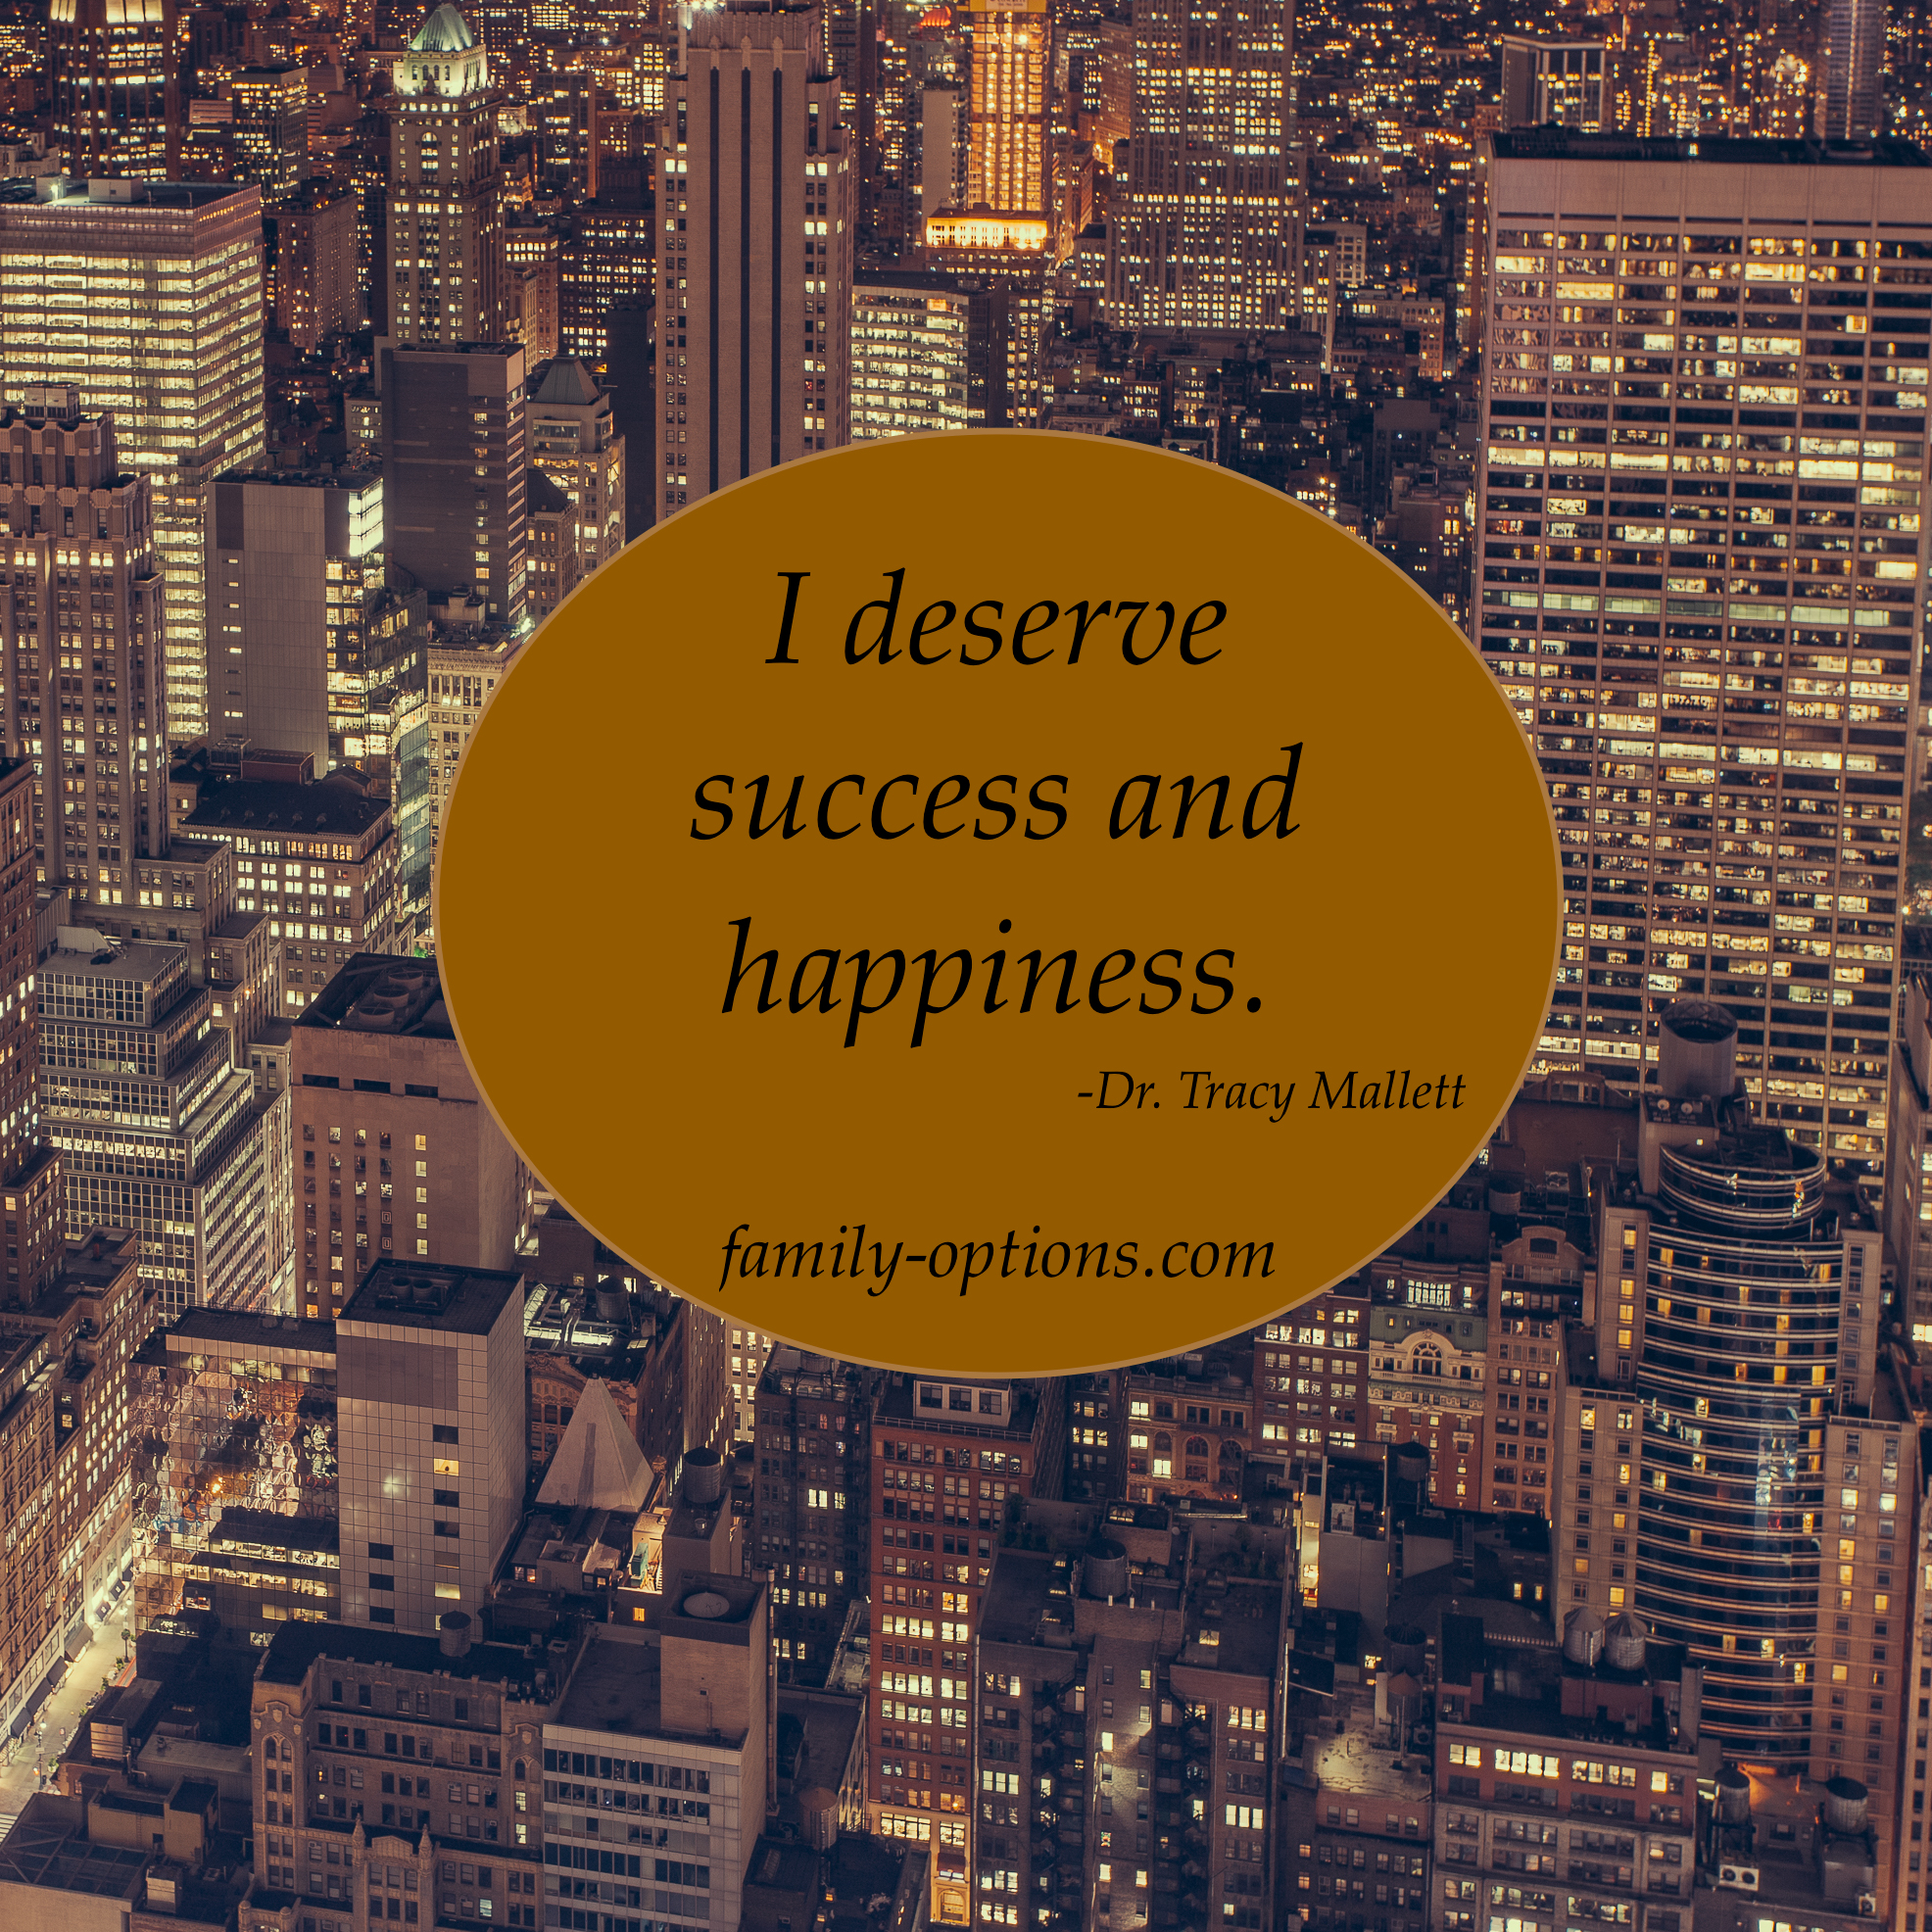 Claiming happiness